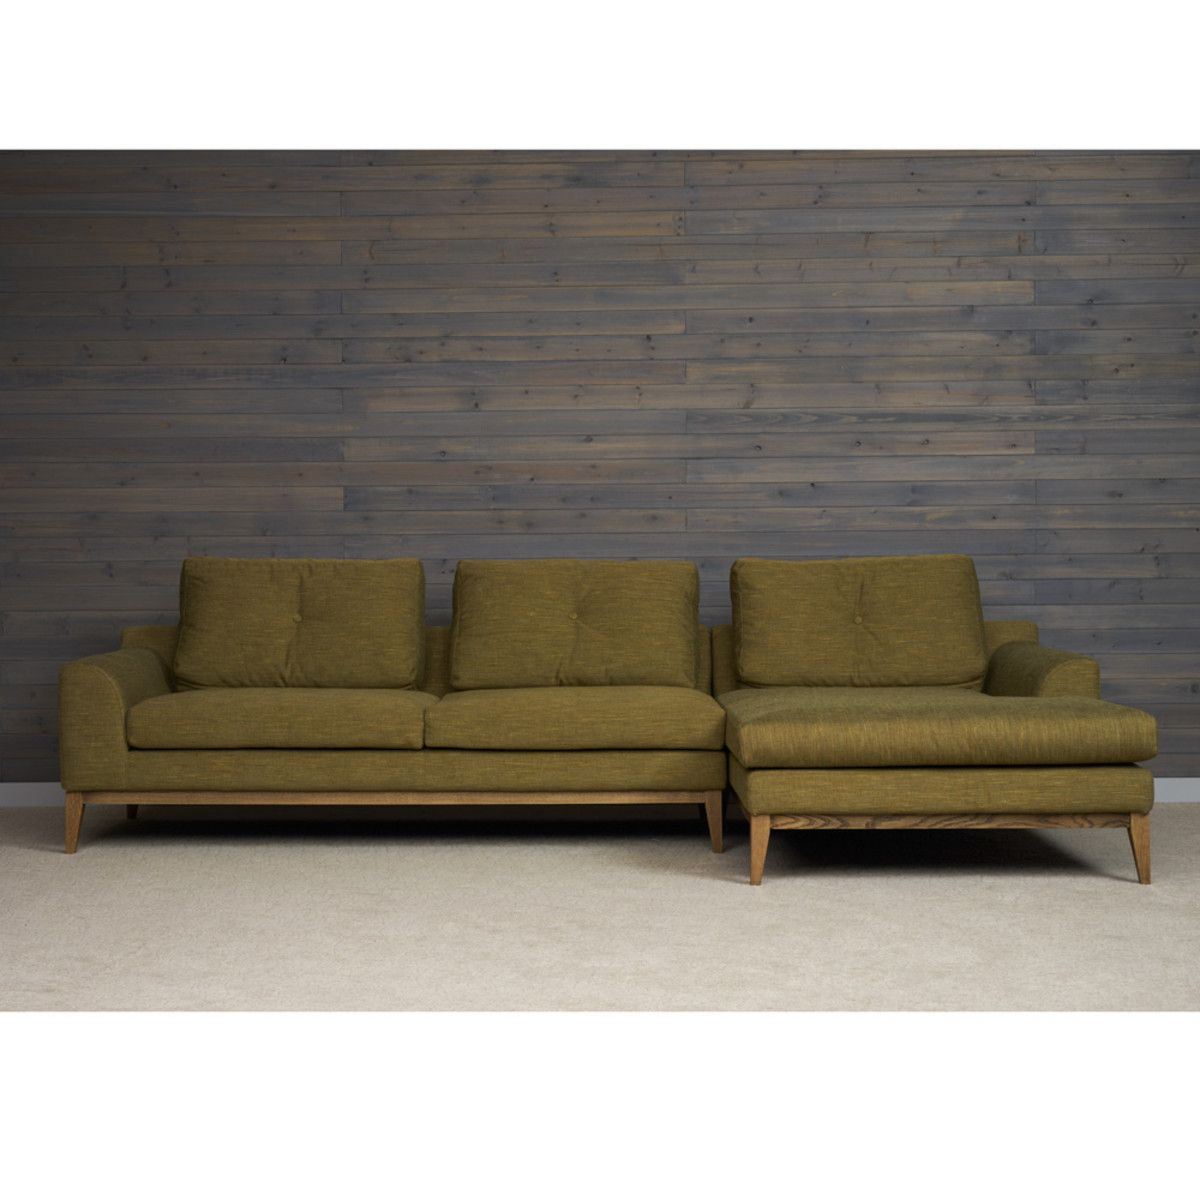 Peachy Wagner 2Pc Mid Century Modern Sofa Sectional Olive Green Lamtechconsult Wood Chair Design Ideas Lamtechconsultcom